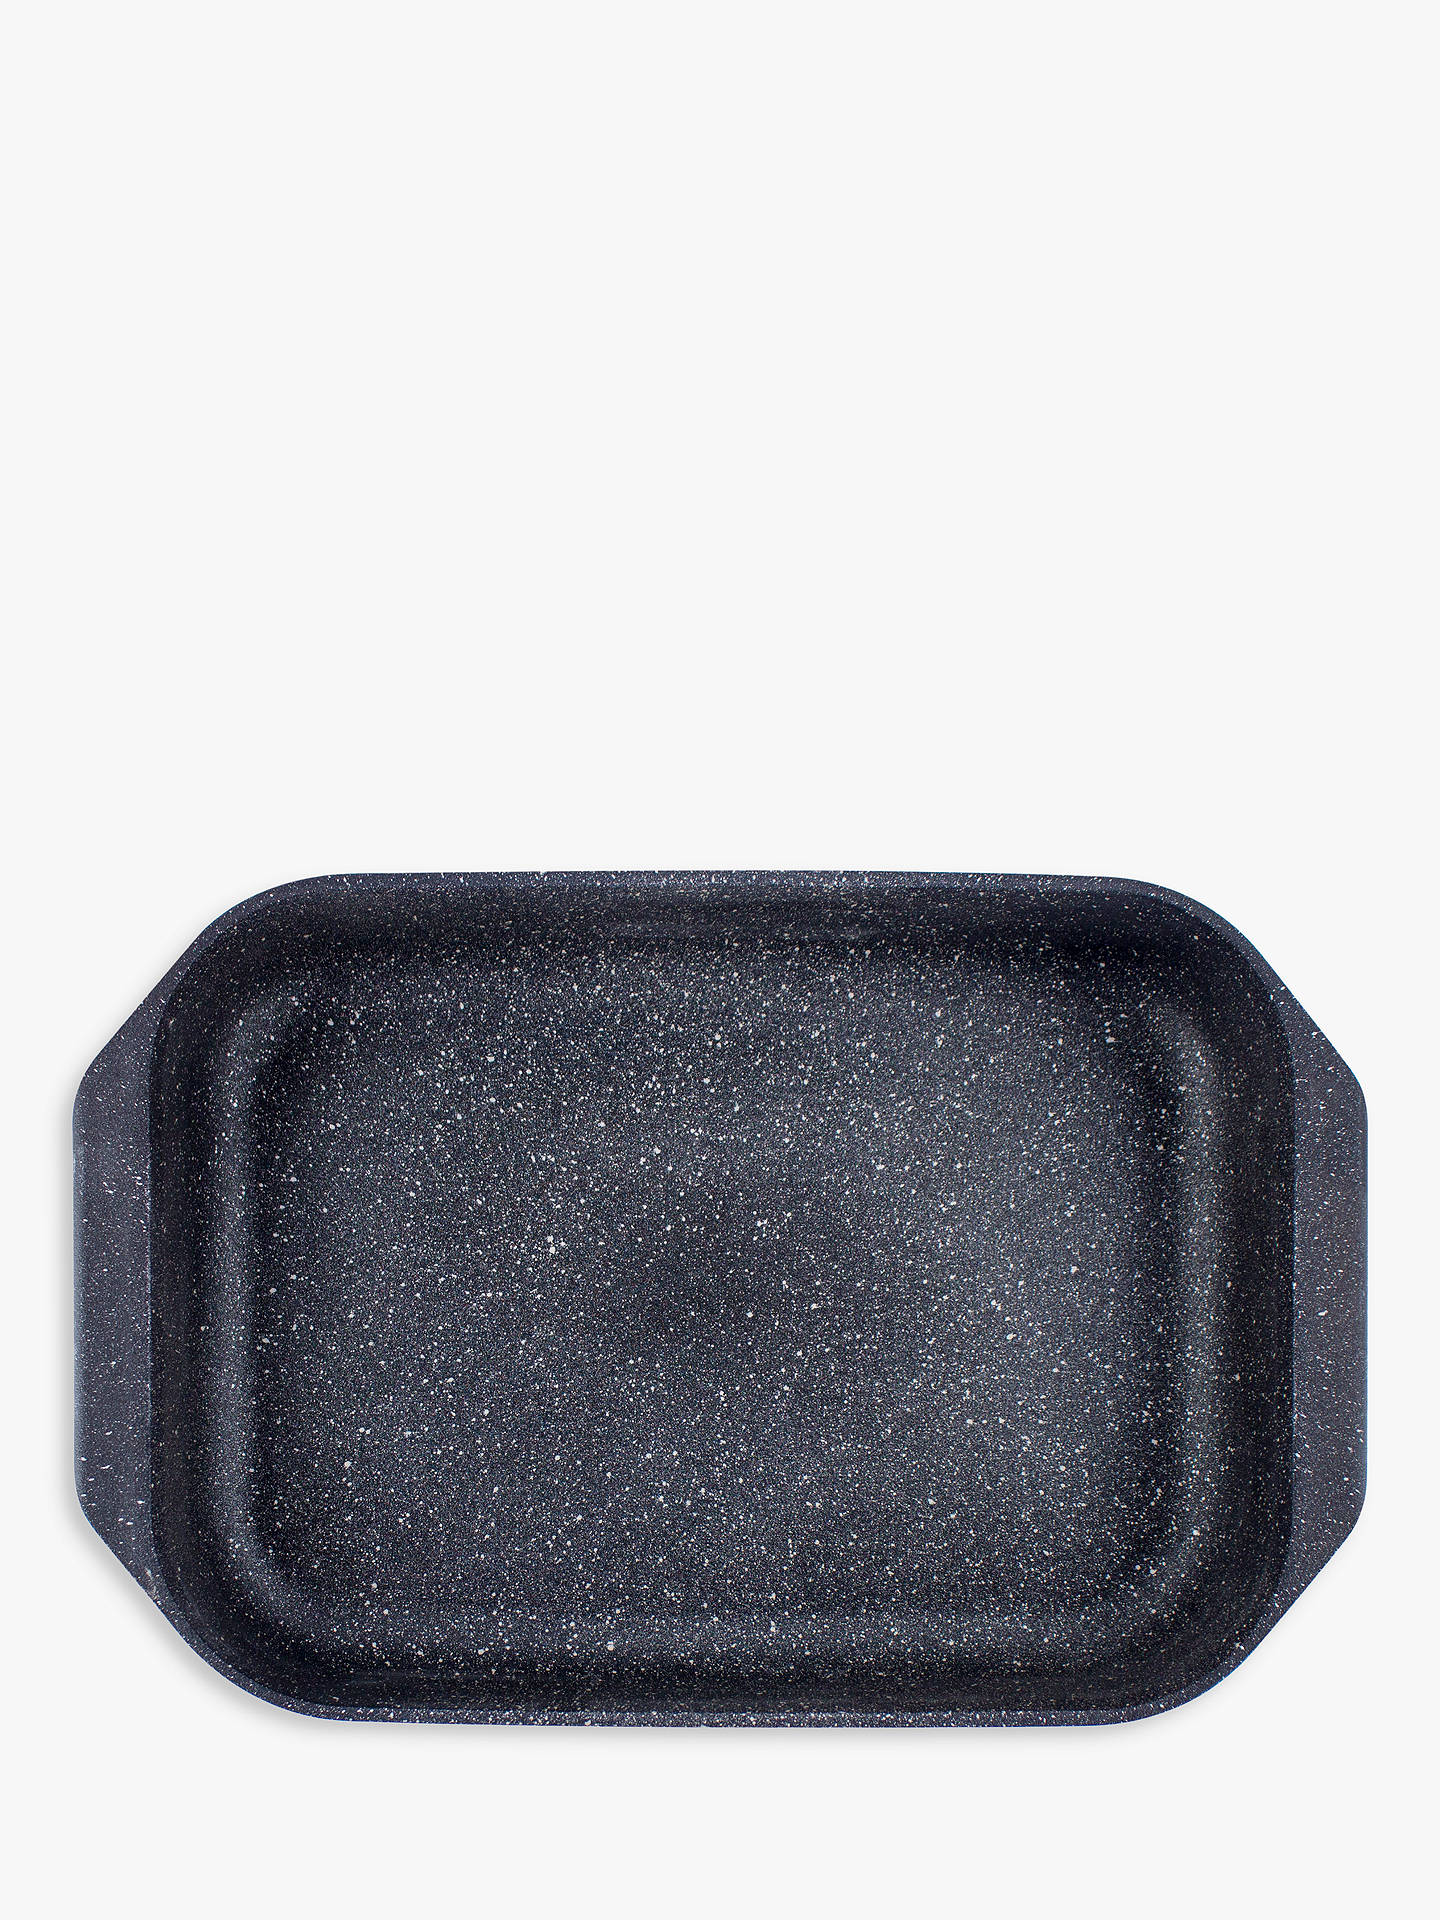 BuyEaziglide Neverstick2 Non-Stick Roaster, Black Online at johnlewis.com